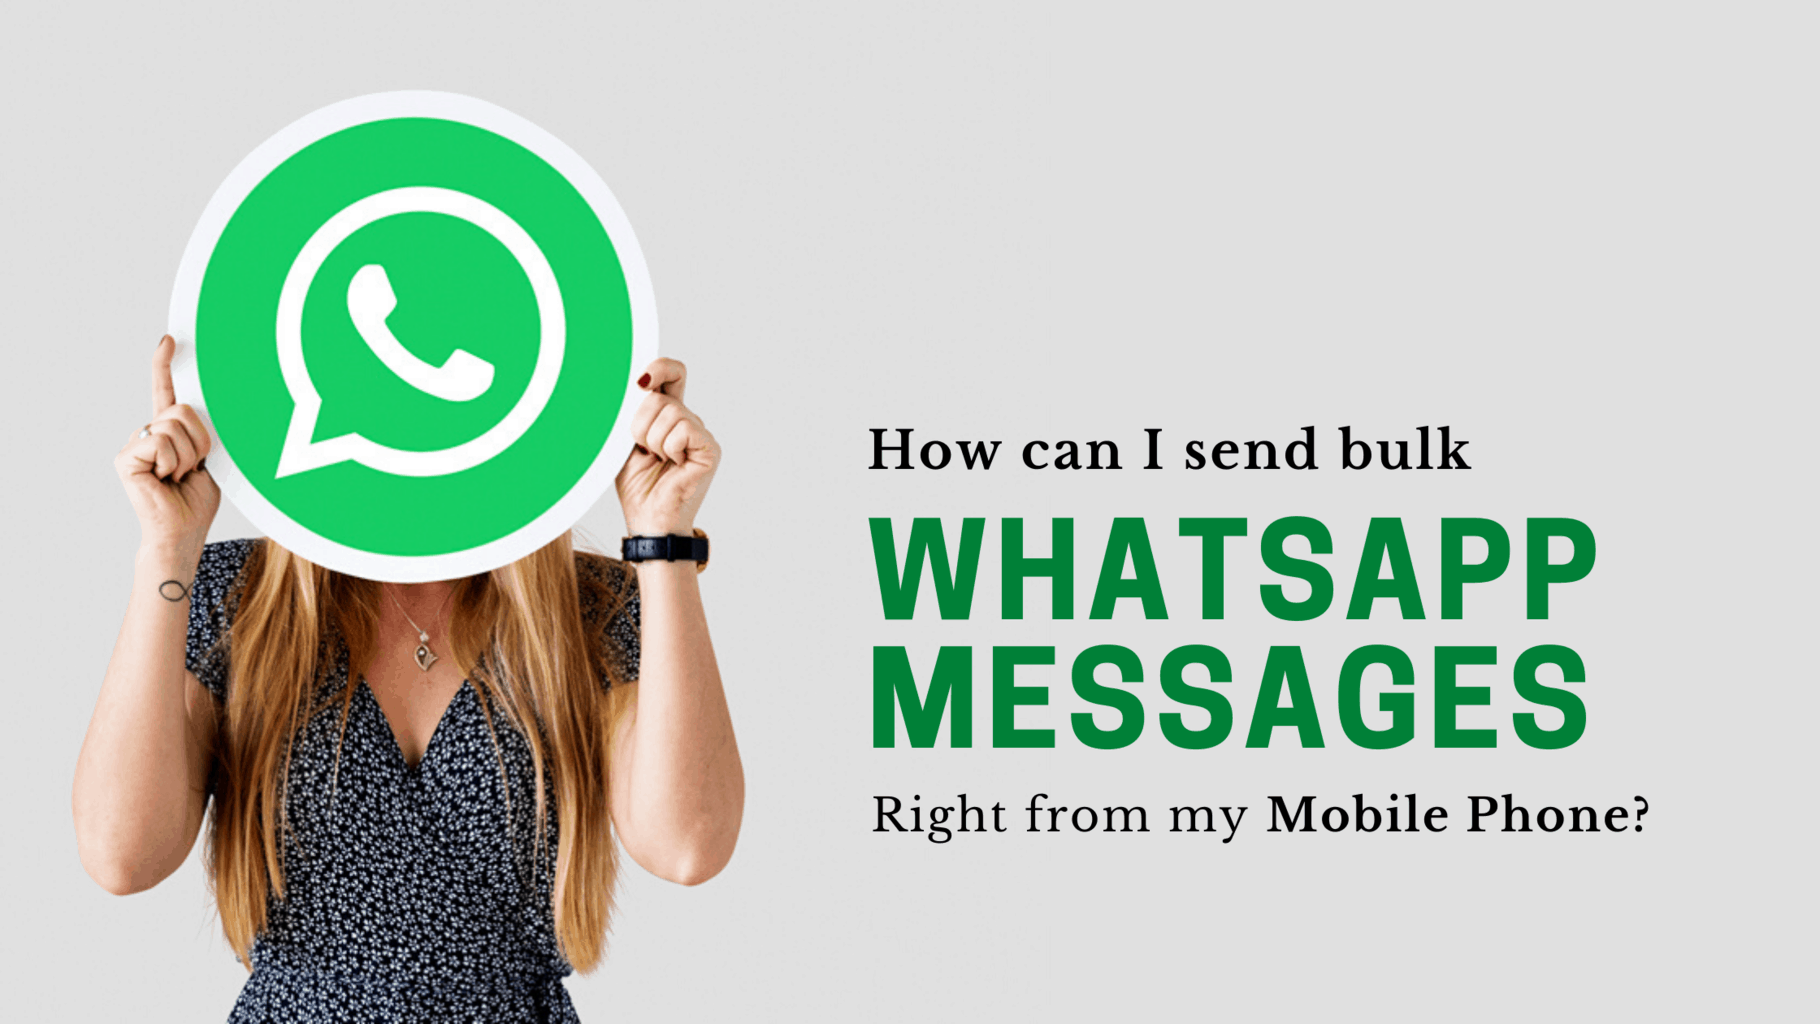 Send Bulk WhatsApp Messages from your Phone 2